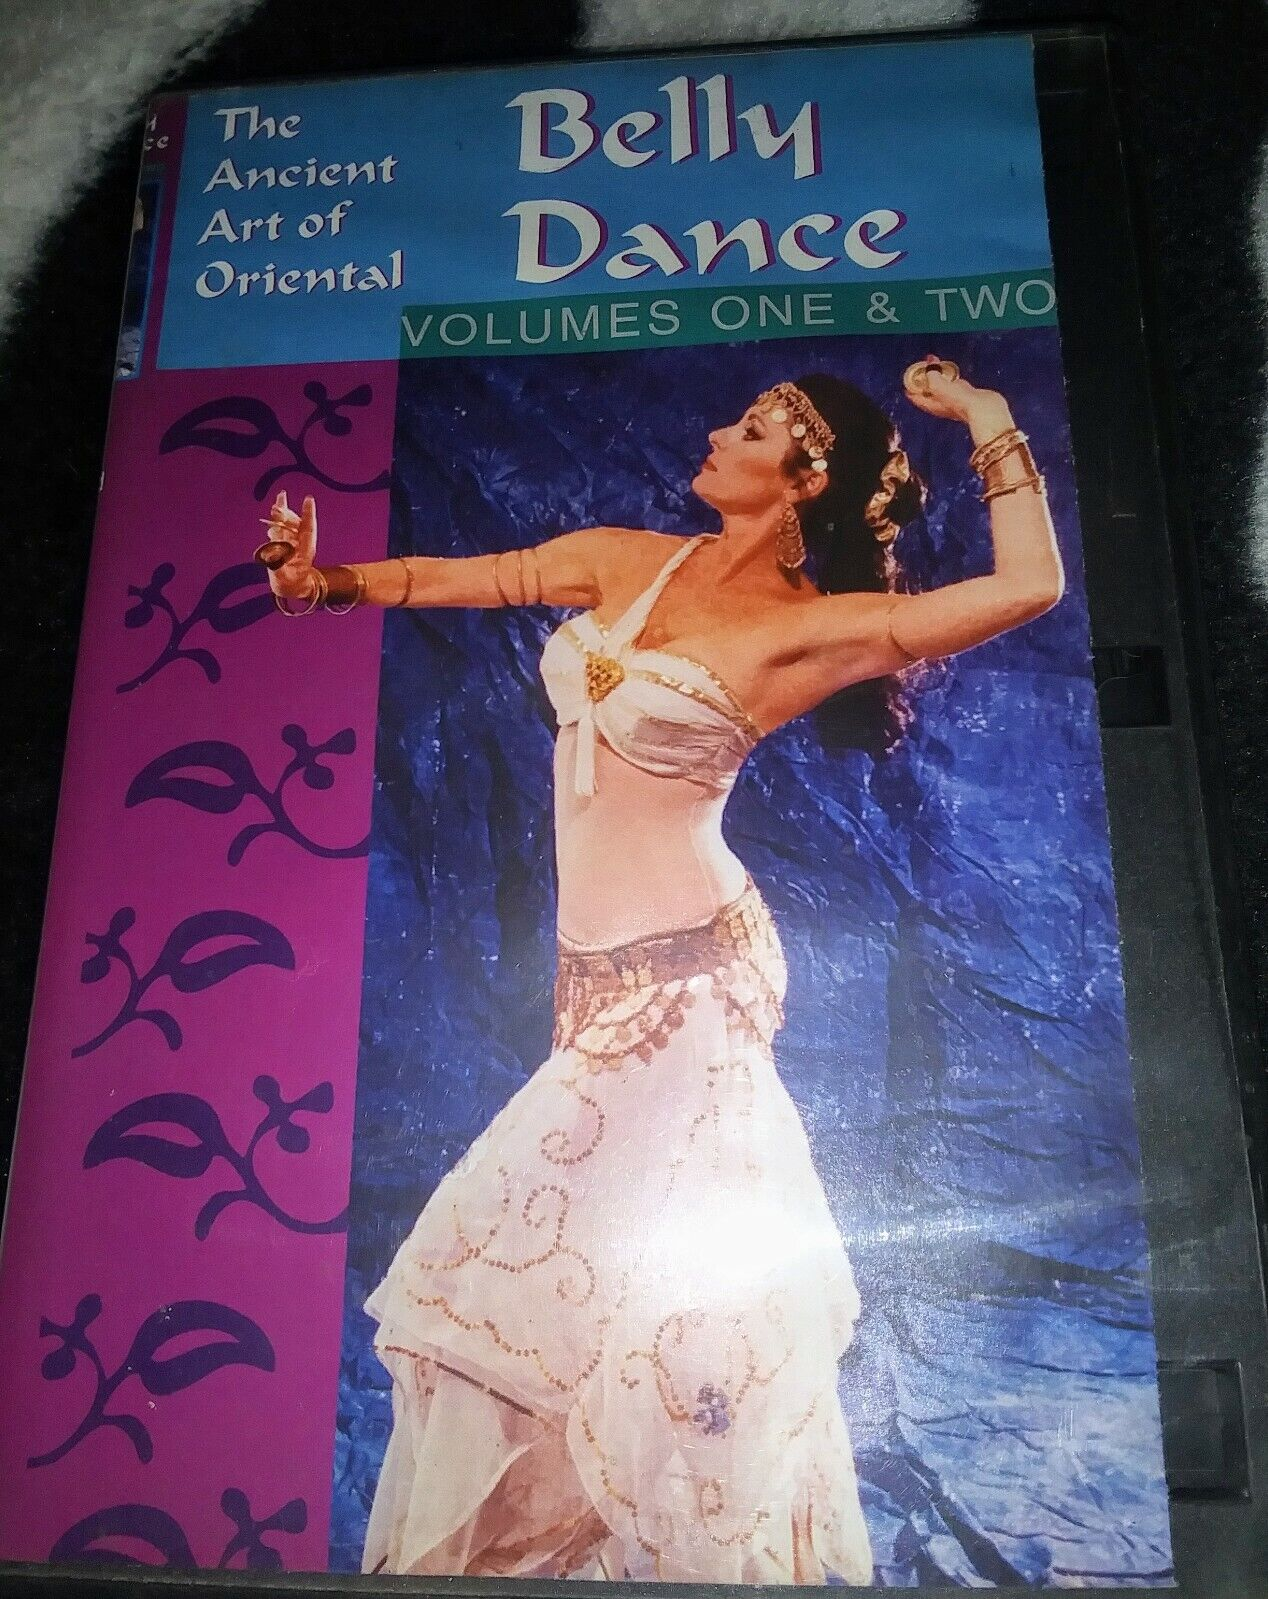 The Ancient Art Of Oriental Belly Dance Volumes One And Two. Alexandra King. - $12.00